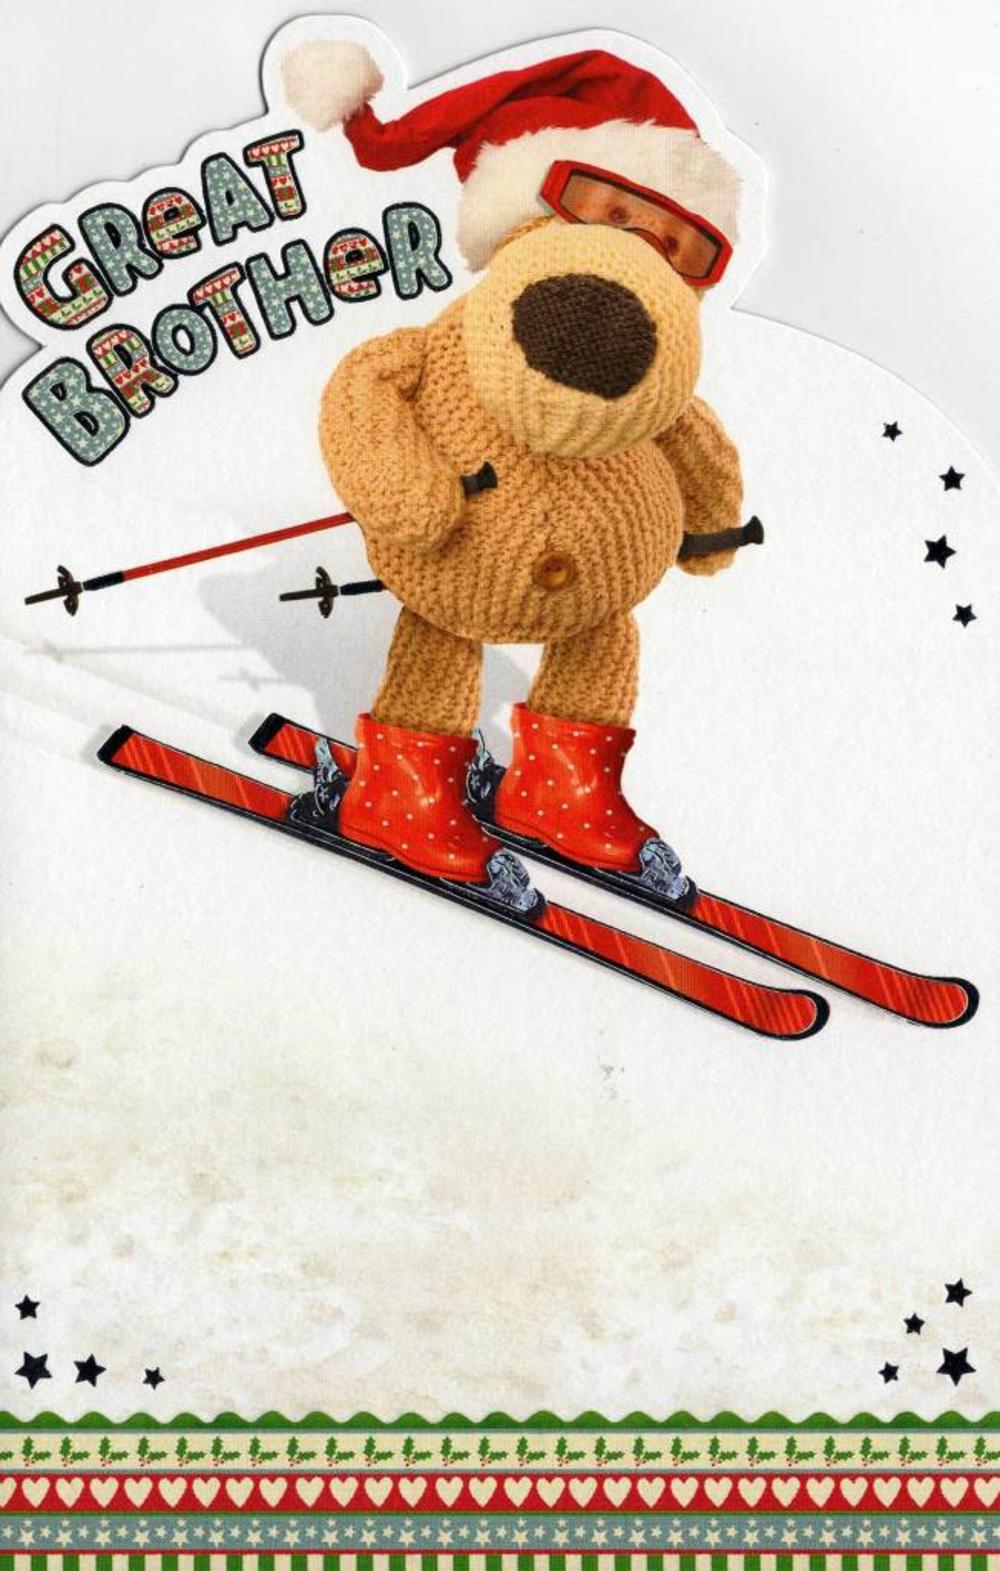 Boofle Great Brother Christmas Card